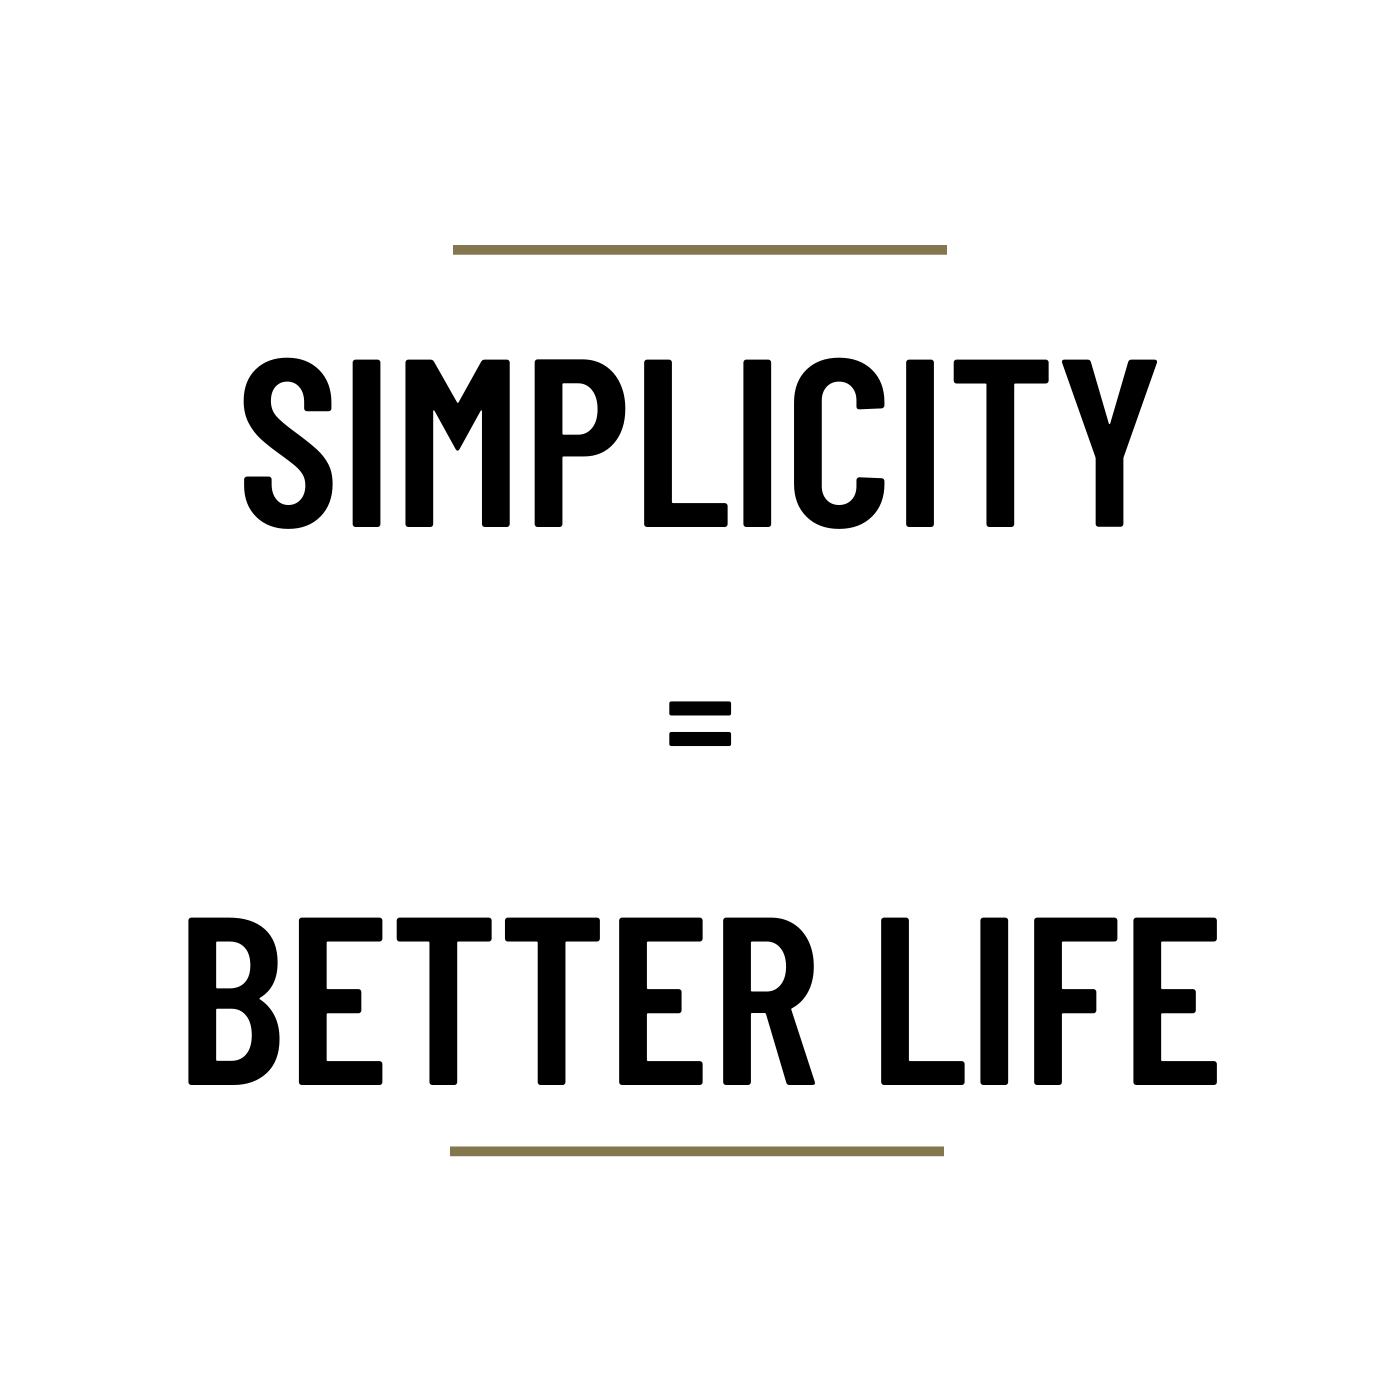 MS74 - Simplicity = Better life